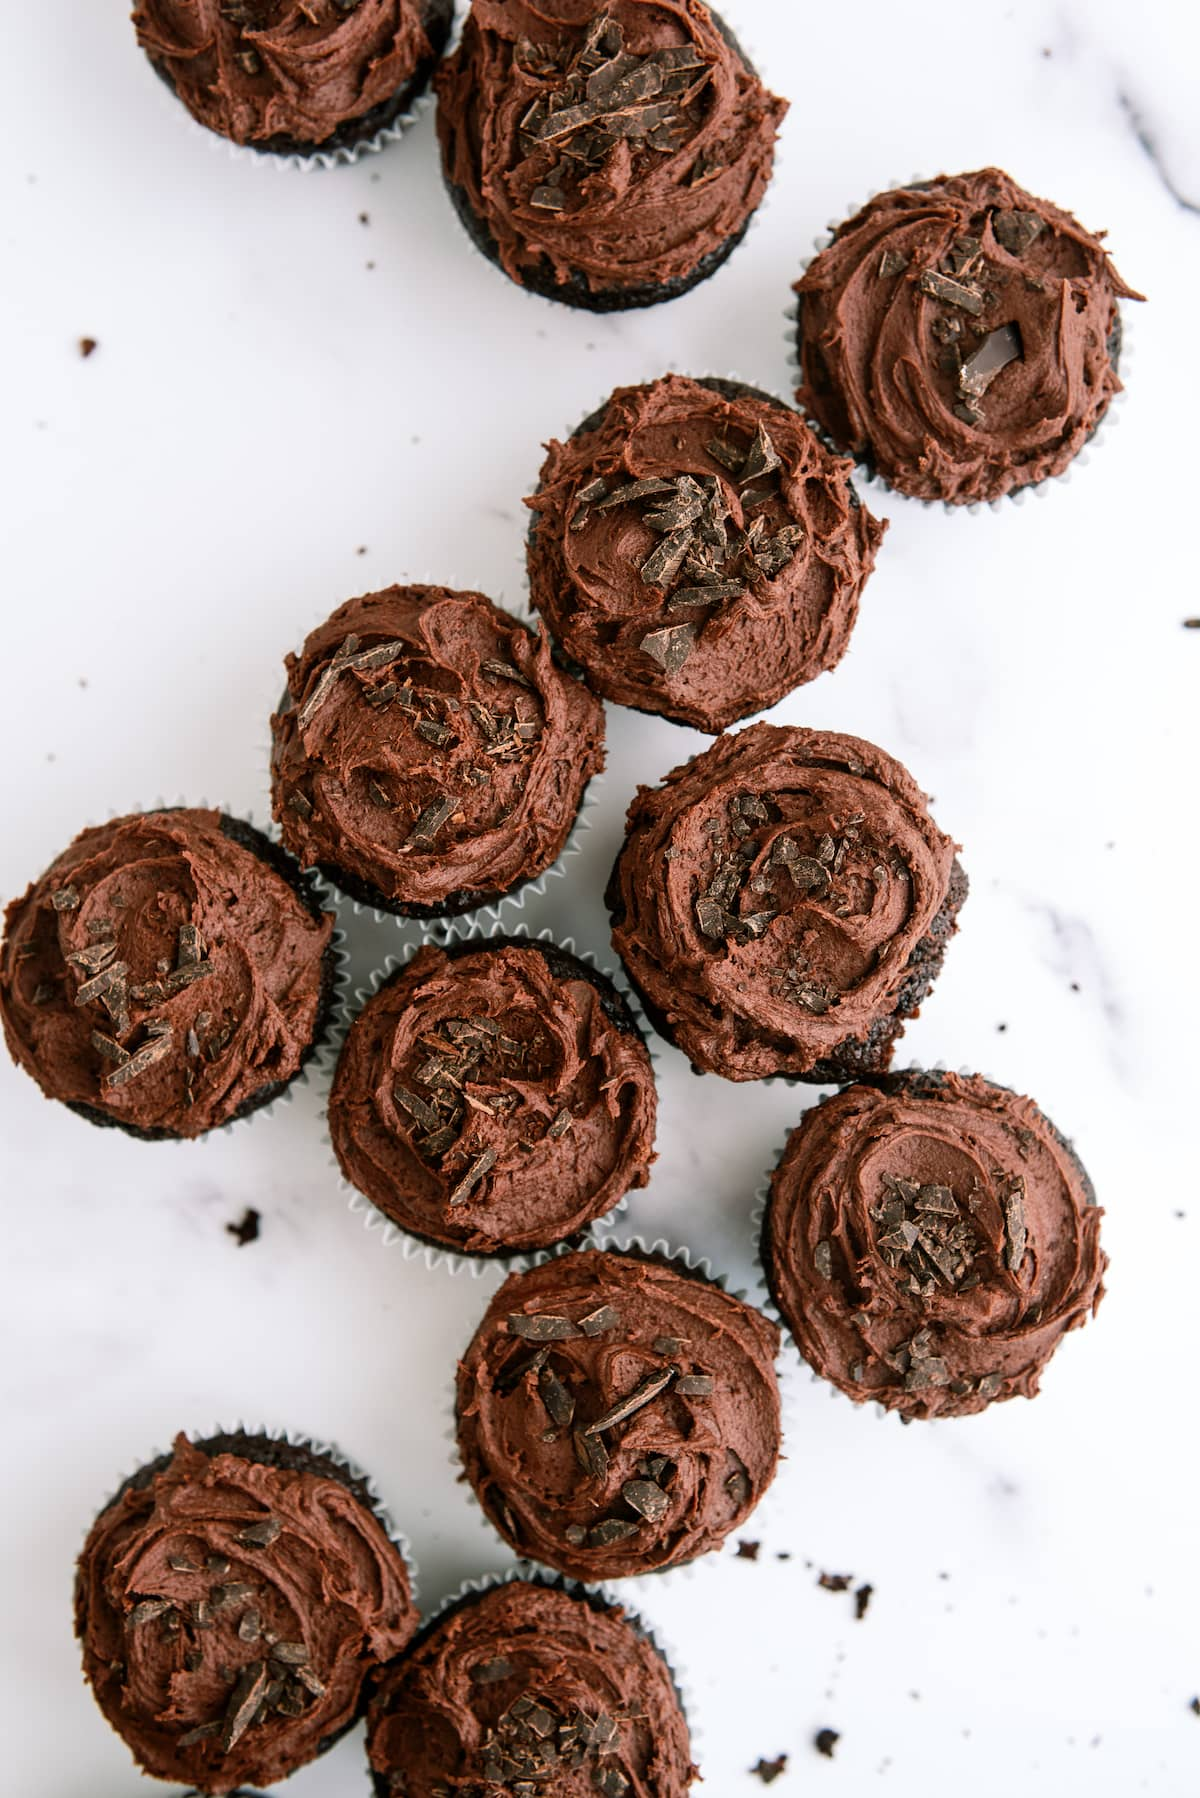 group of chocolate cupcakes with chocolate frosting